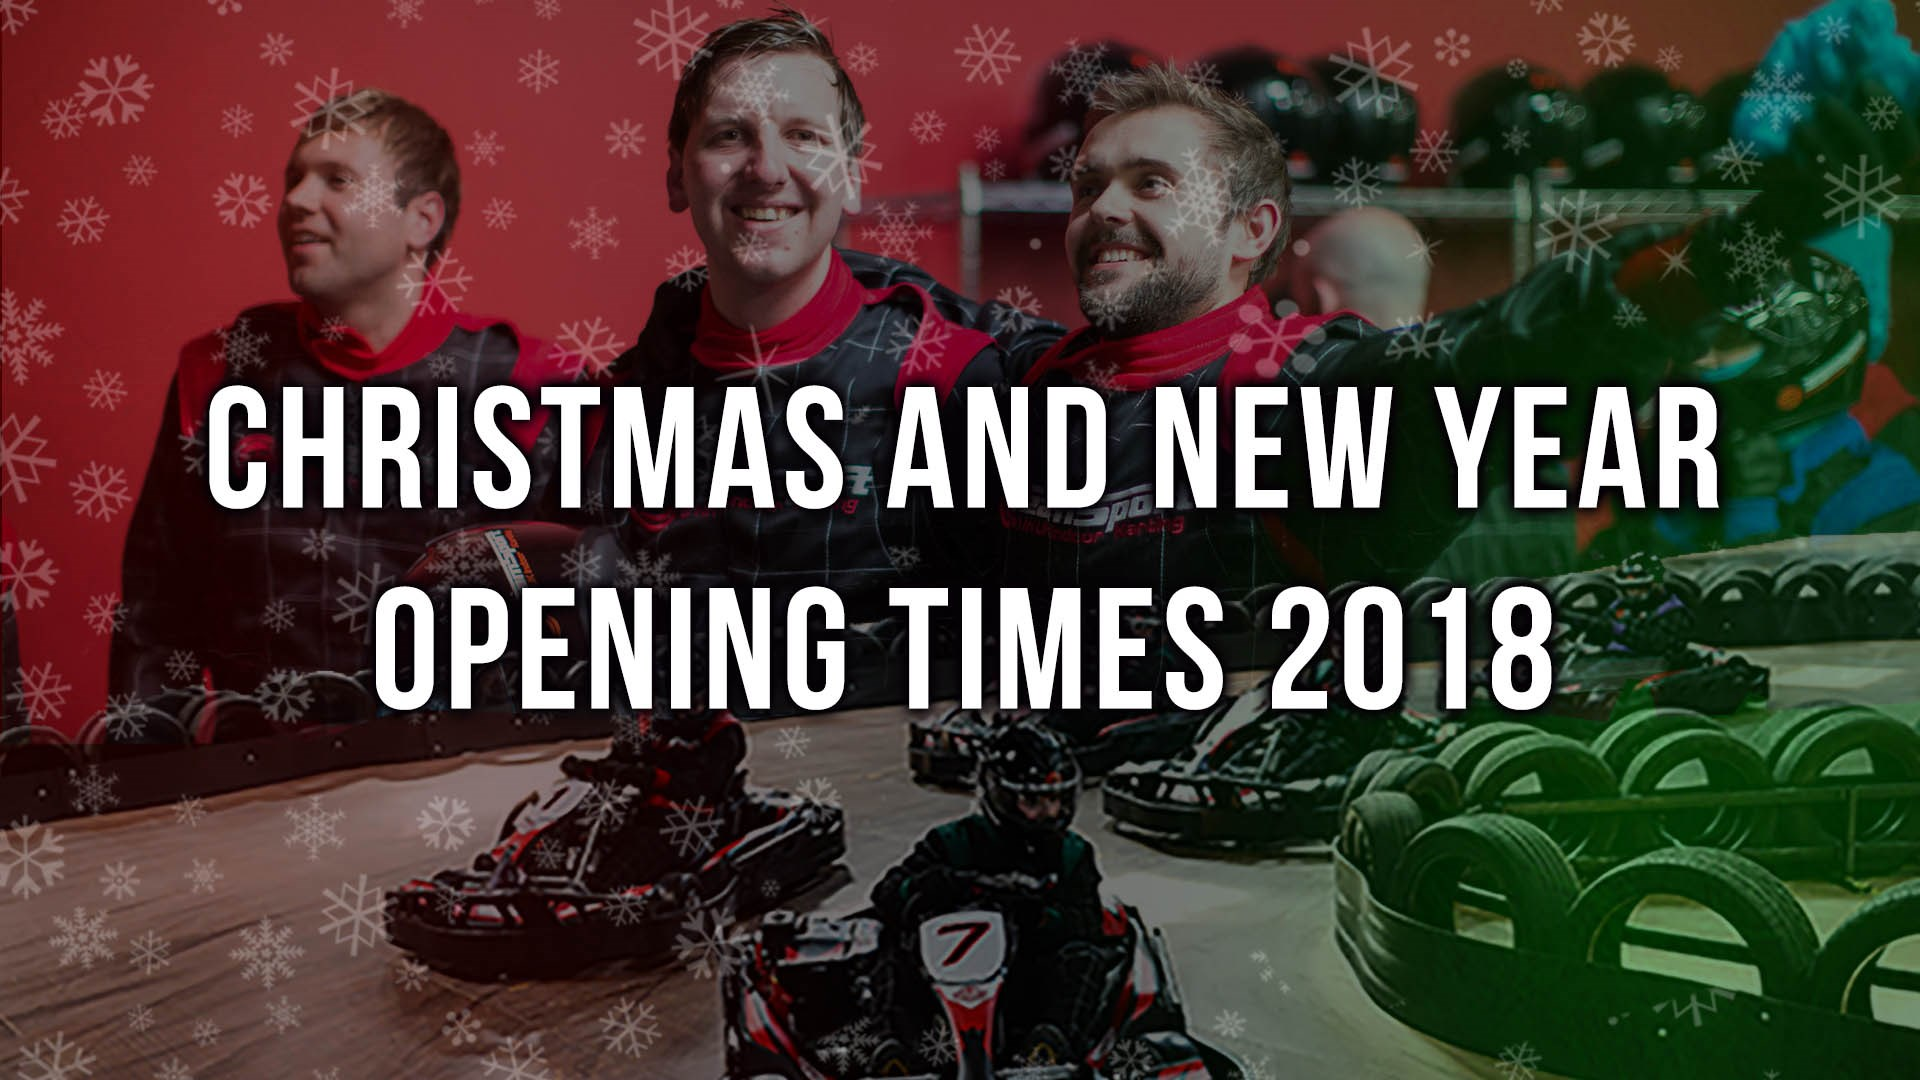 TeamSport_Trackside_News_Christmas_Dates_2018_Main_Header_1920x1080-min.jpg